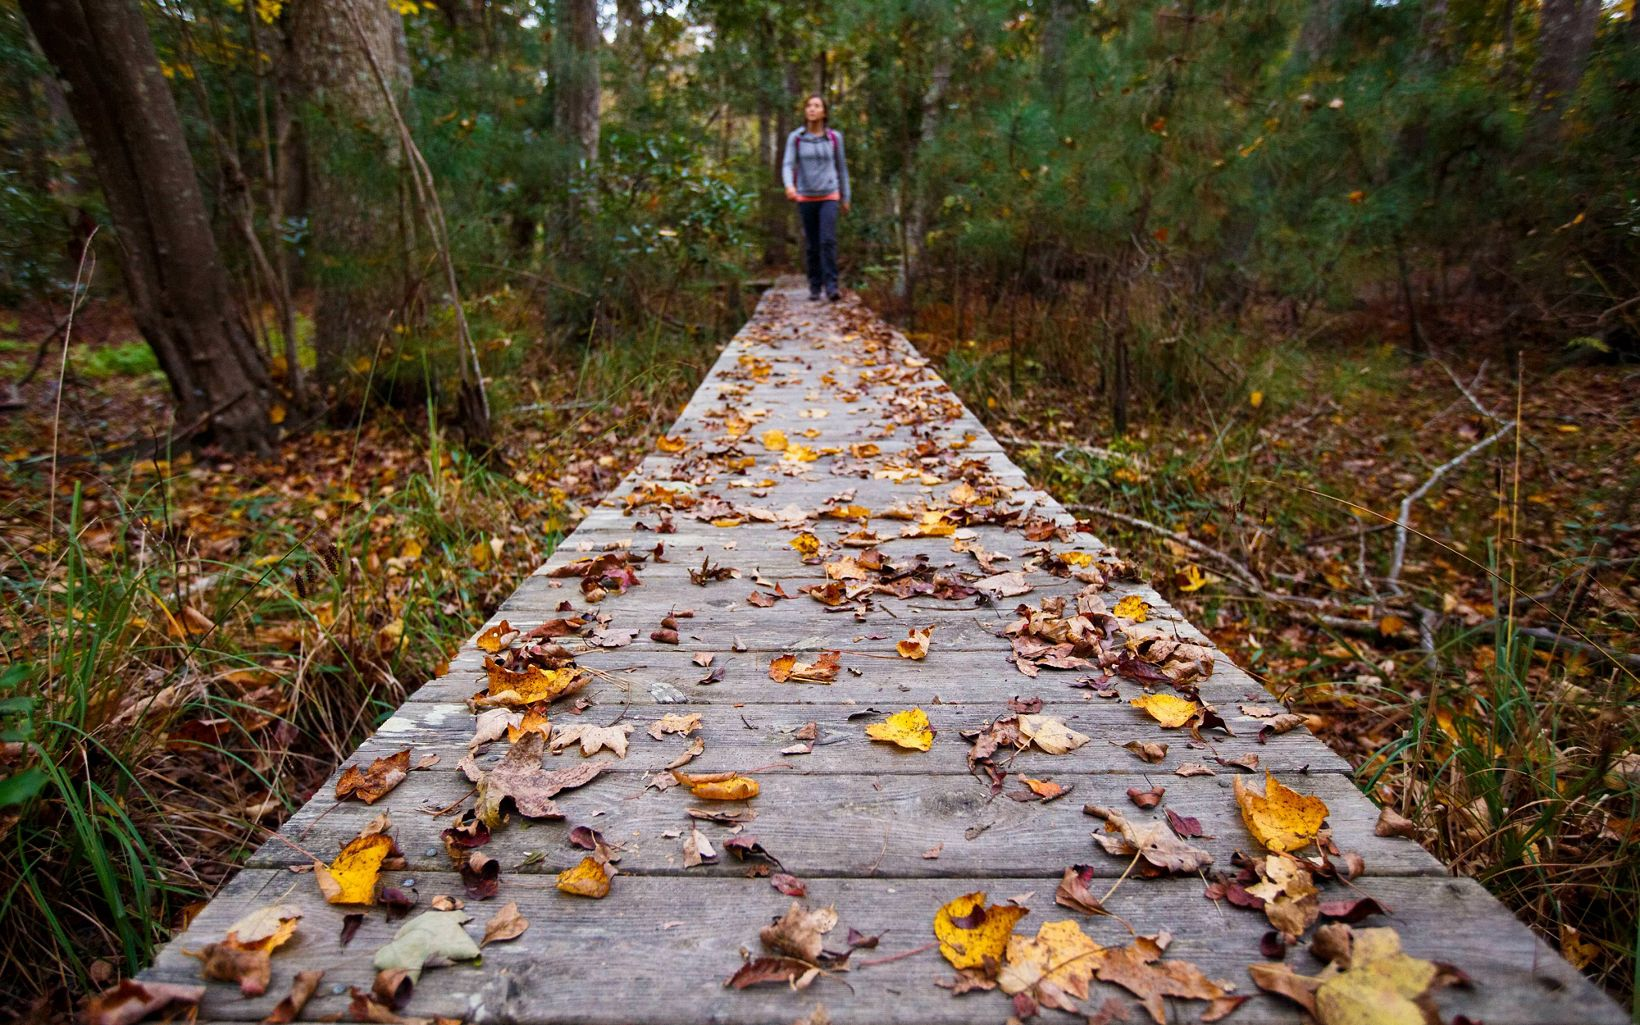 A hiker walks towards the camera along a boardwalk covered in yellow and brown leaves.